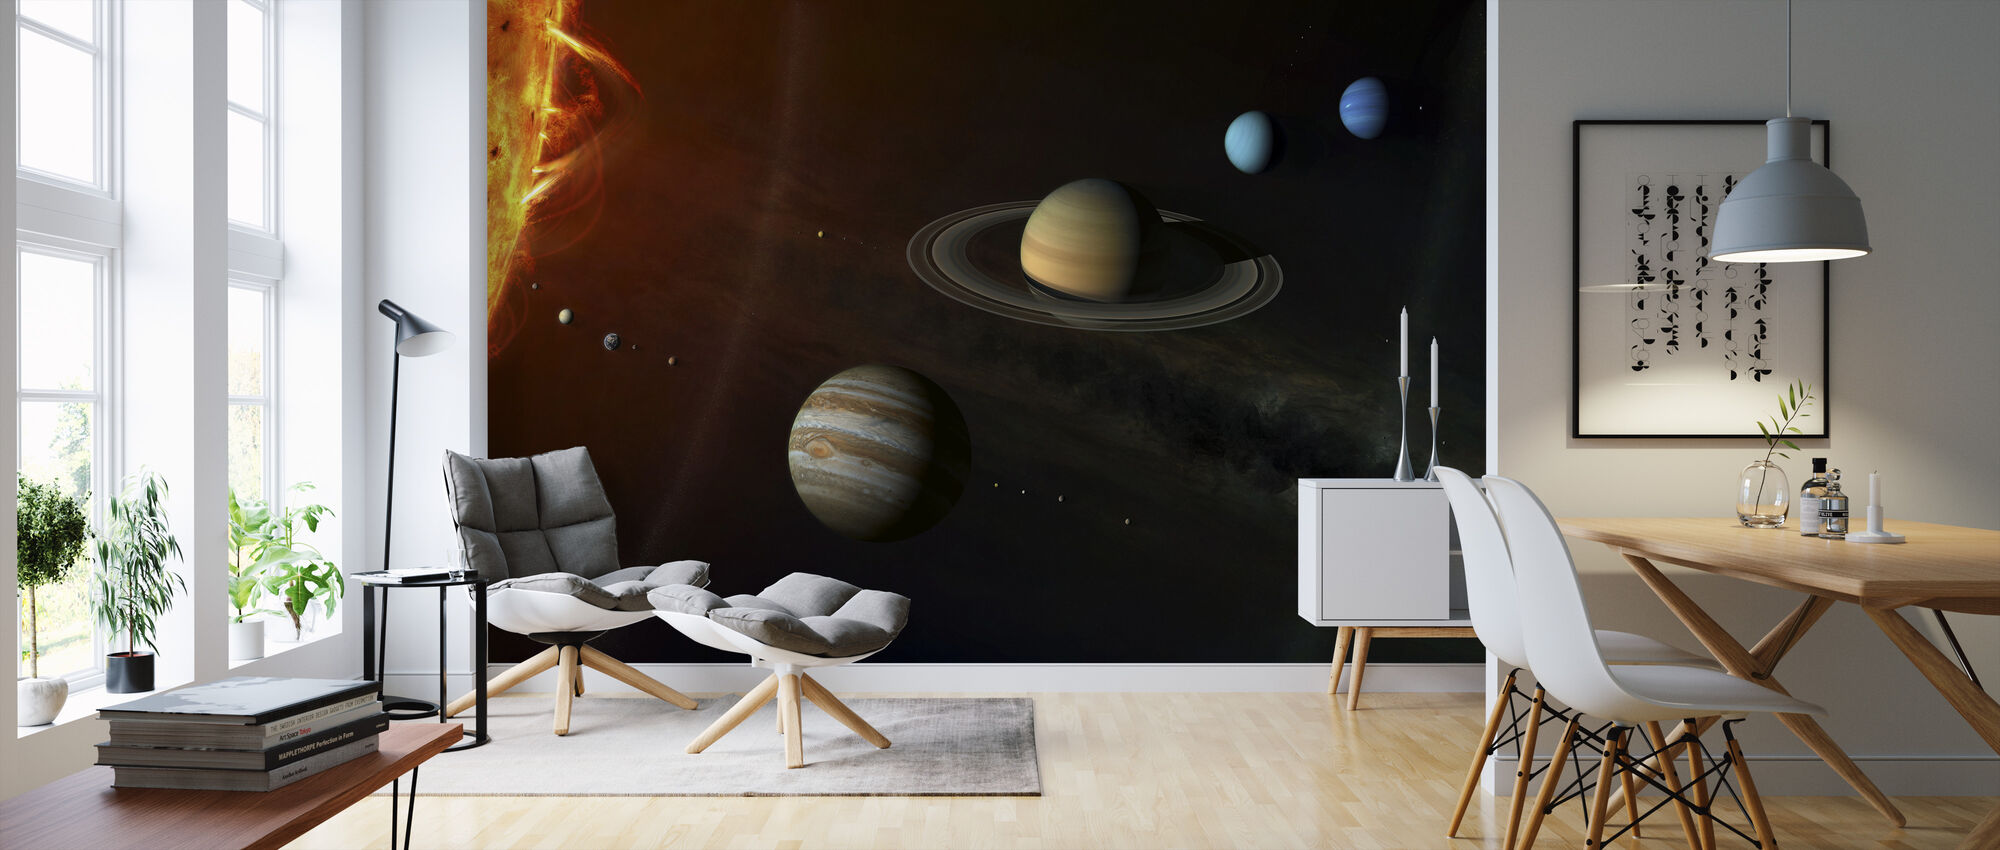 Solar System - Wallpaper - Living Room